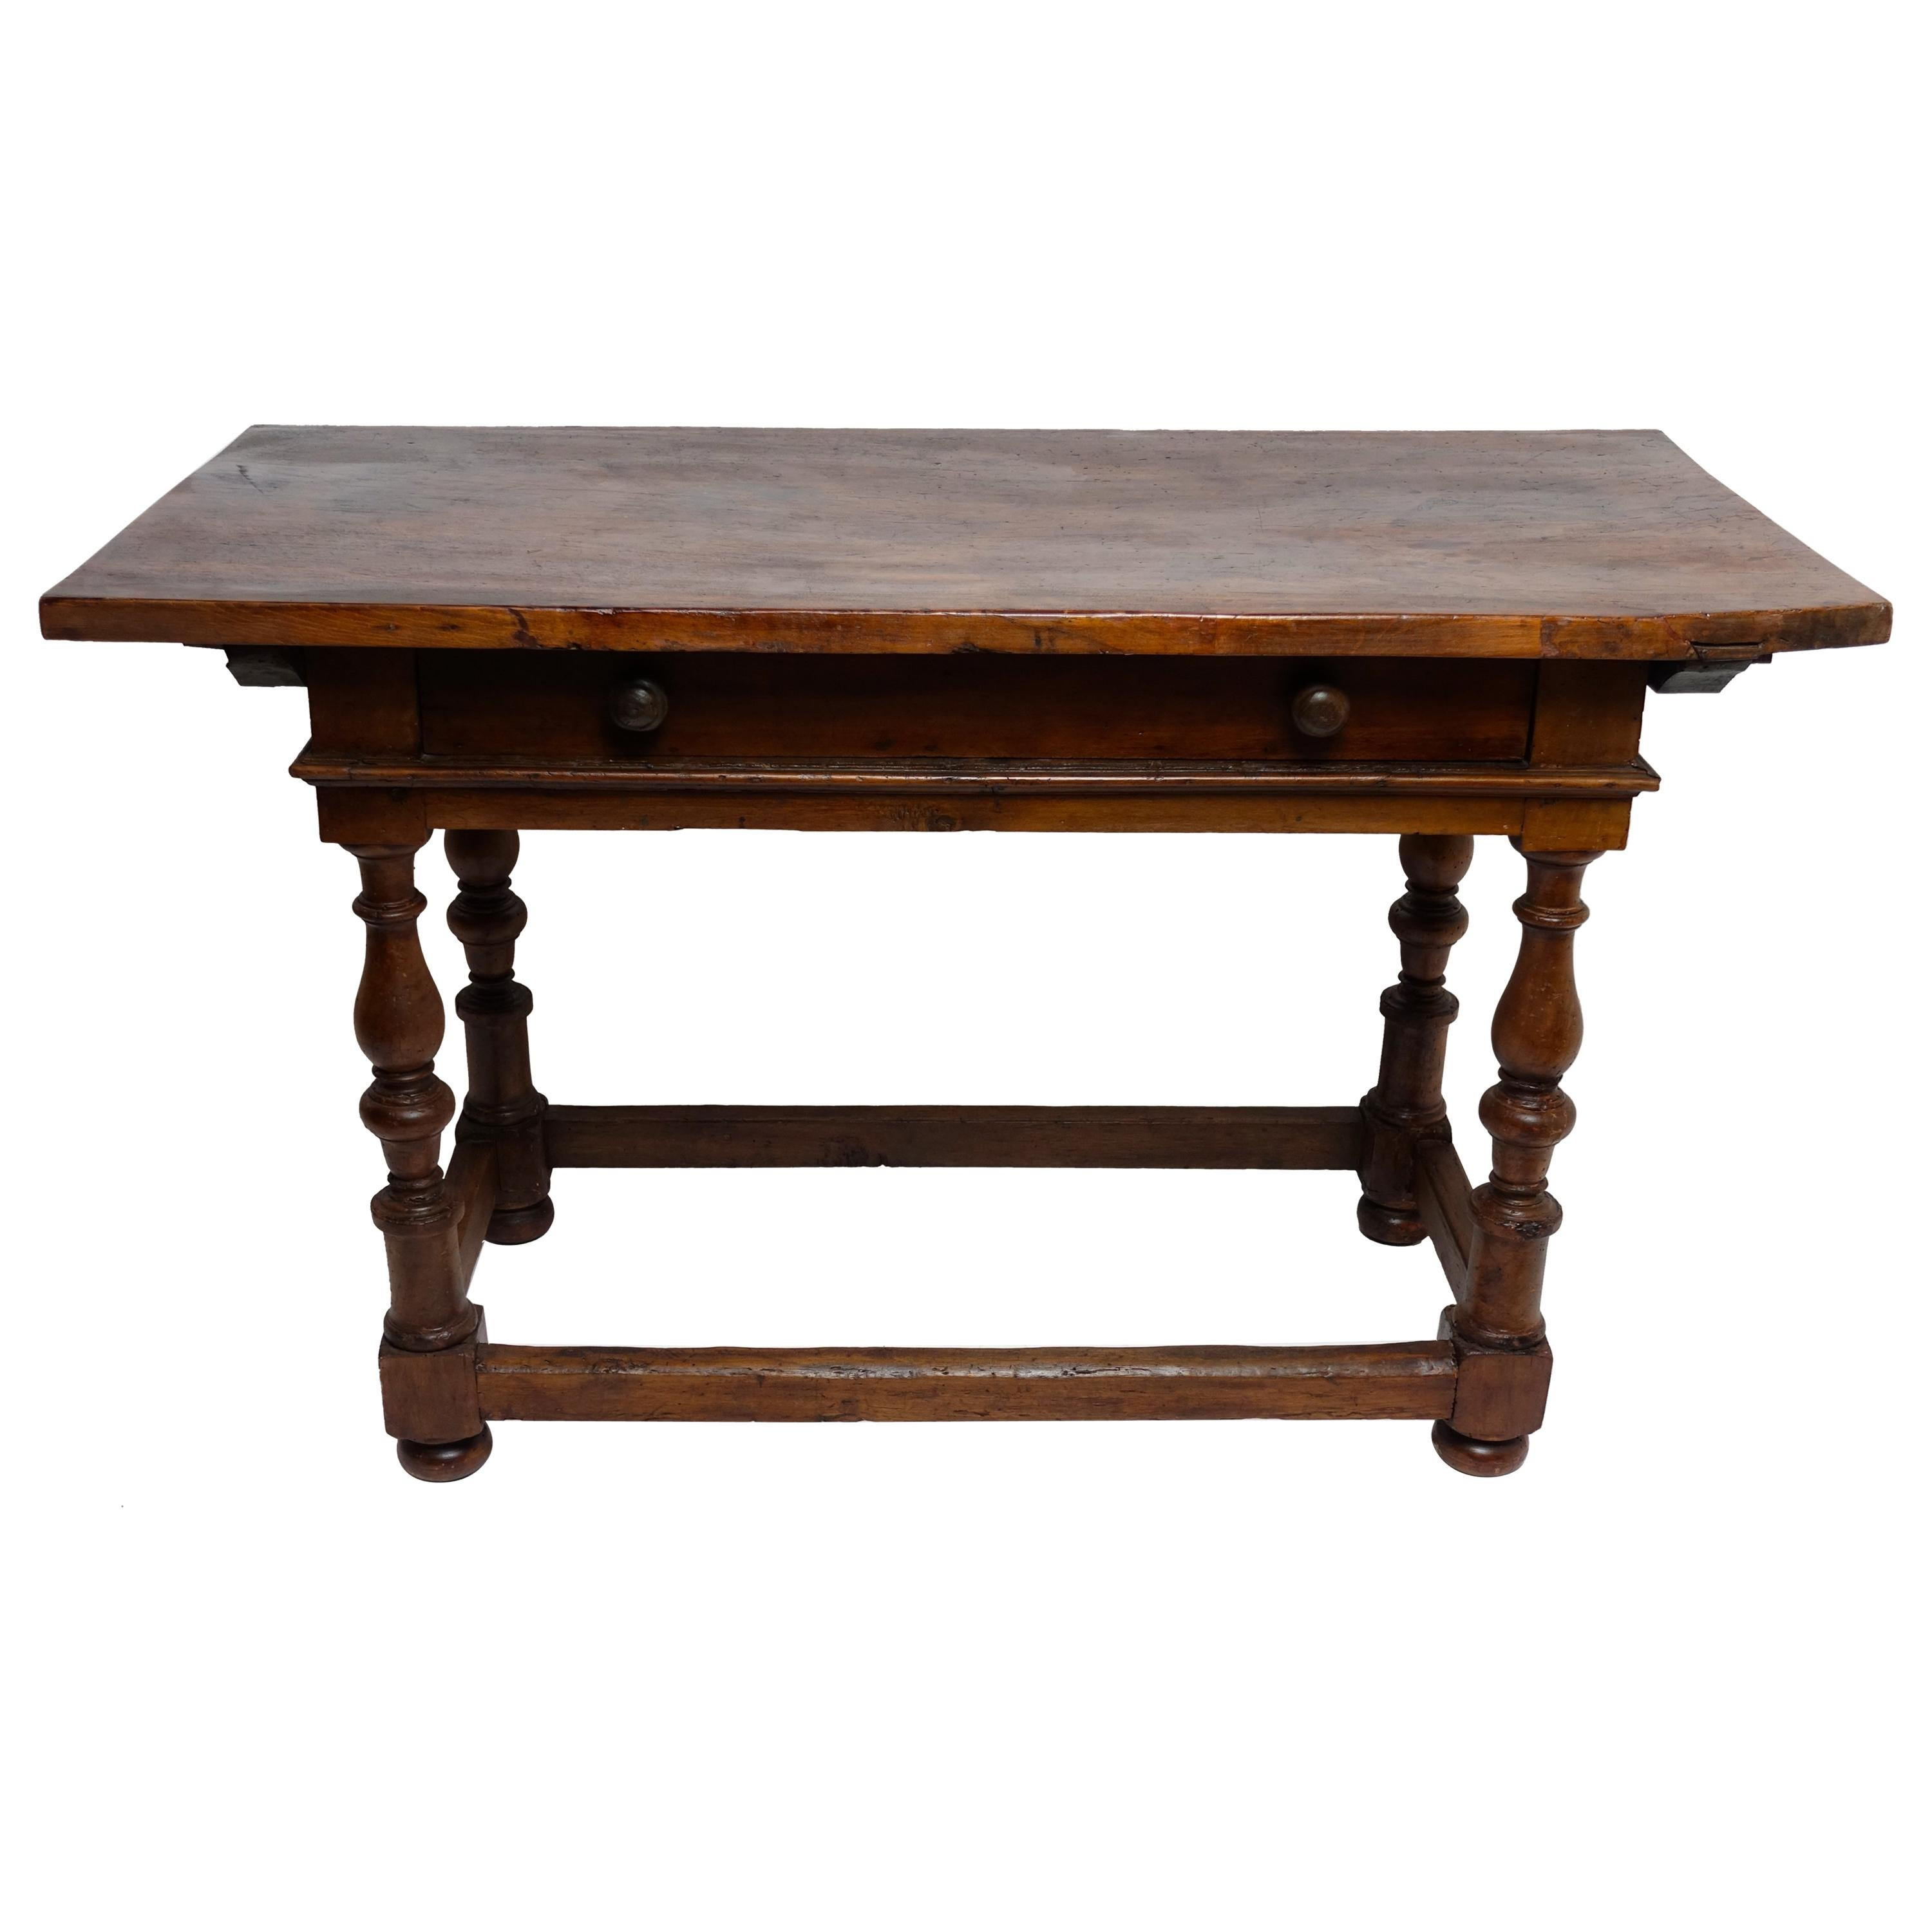 Italian 18th Century Walnut Table with Large Drawer